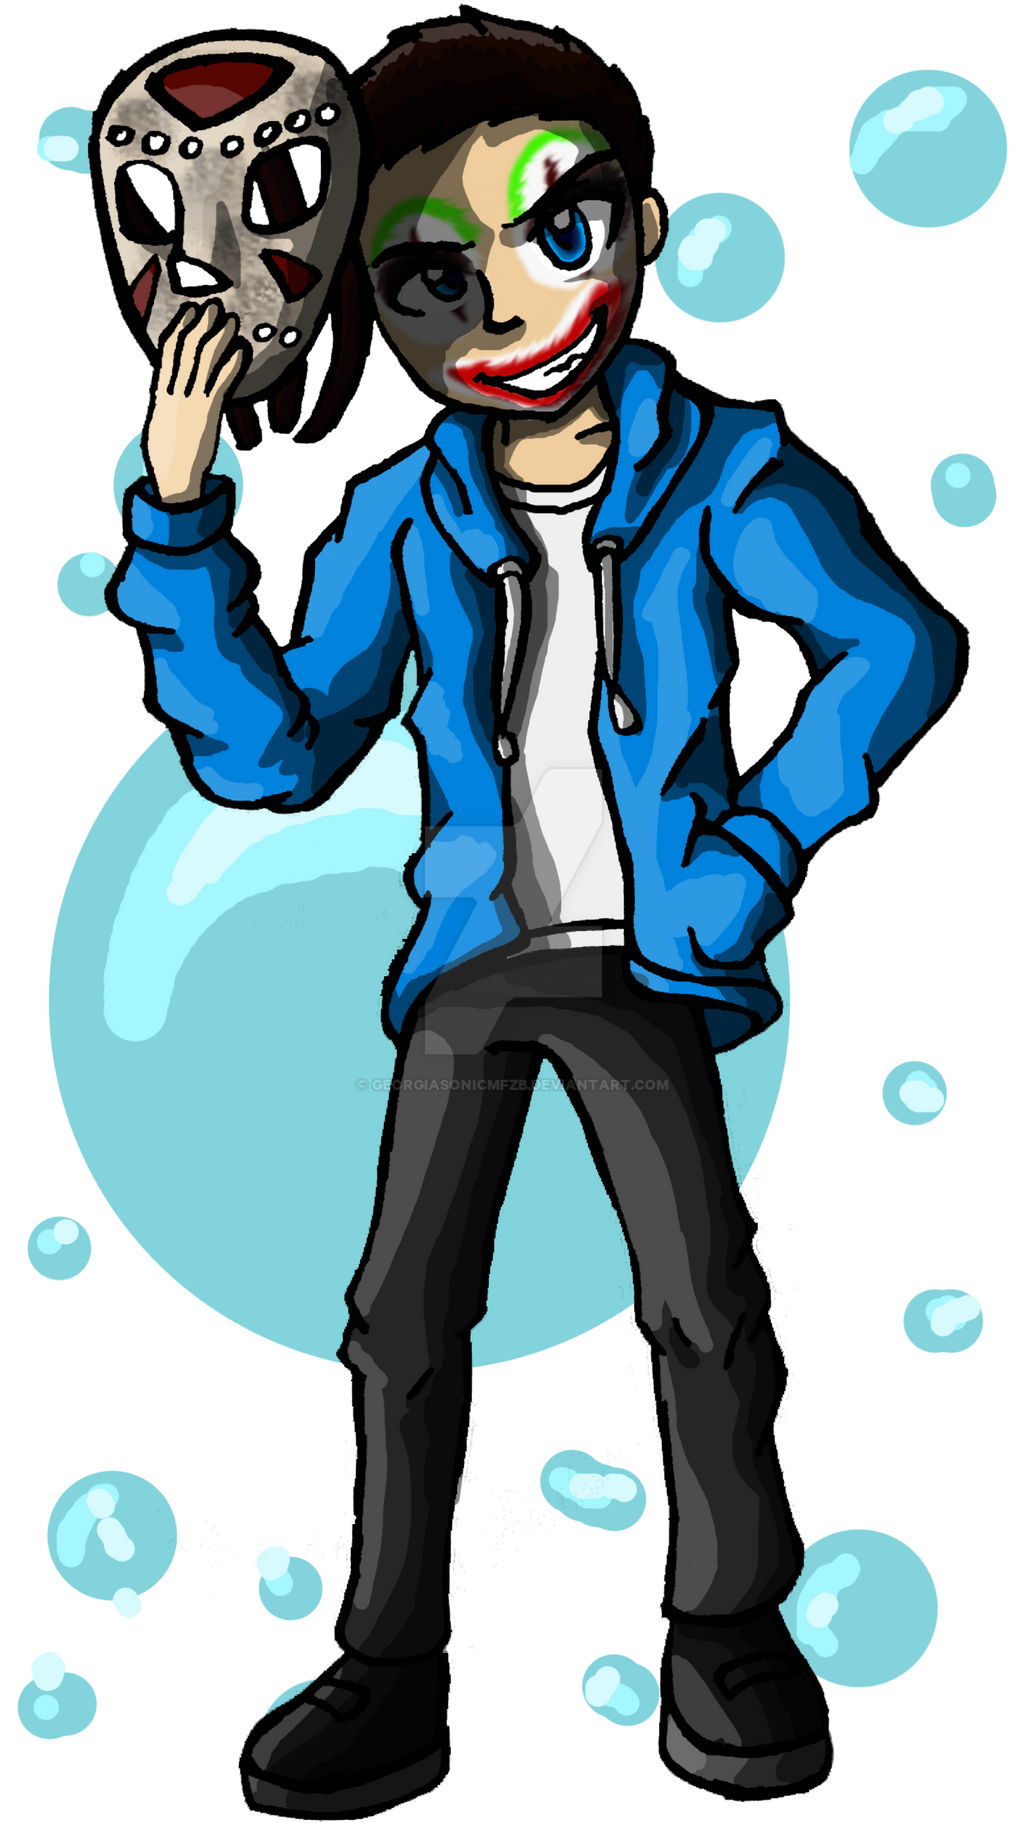 H2O Delirious by GeorgiaSonicMFZB on DeviantArt H20 Delirious Fan Art